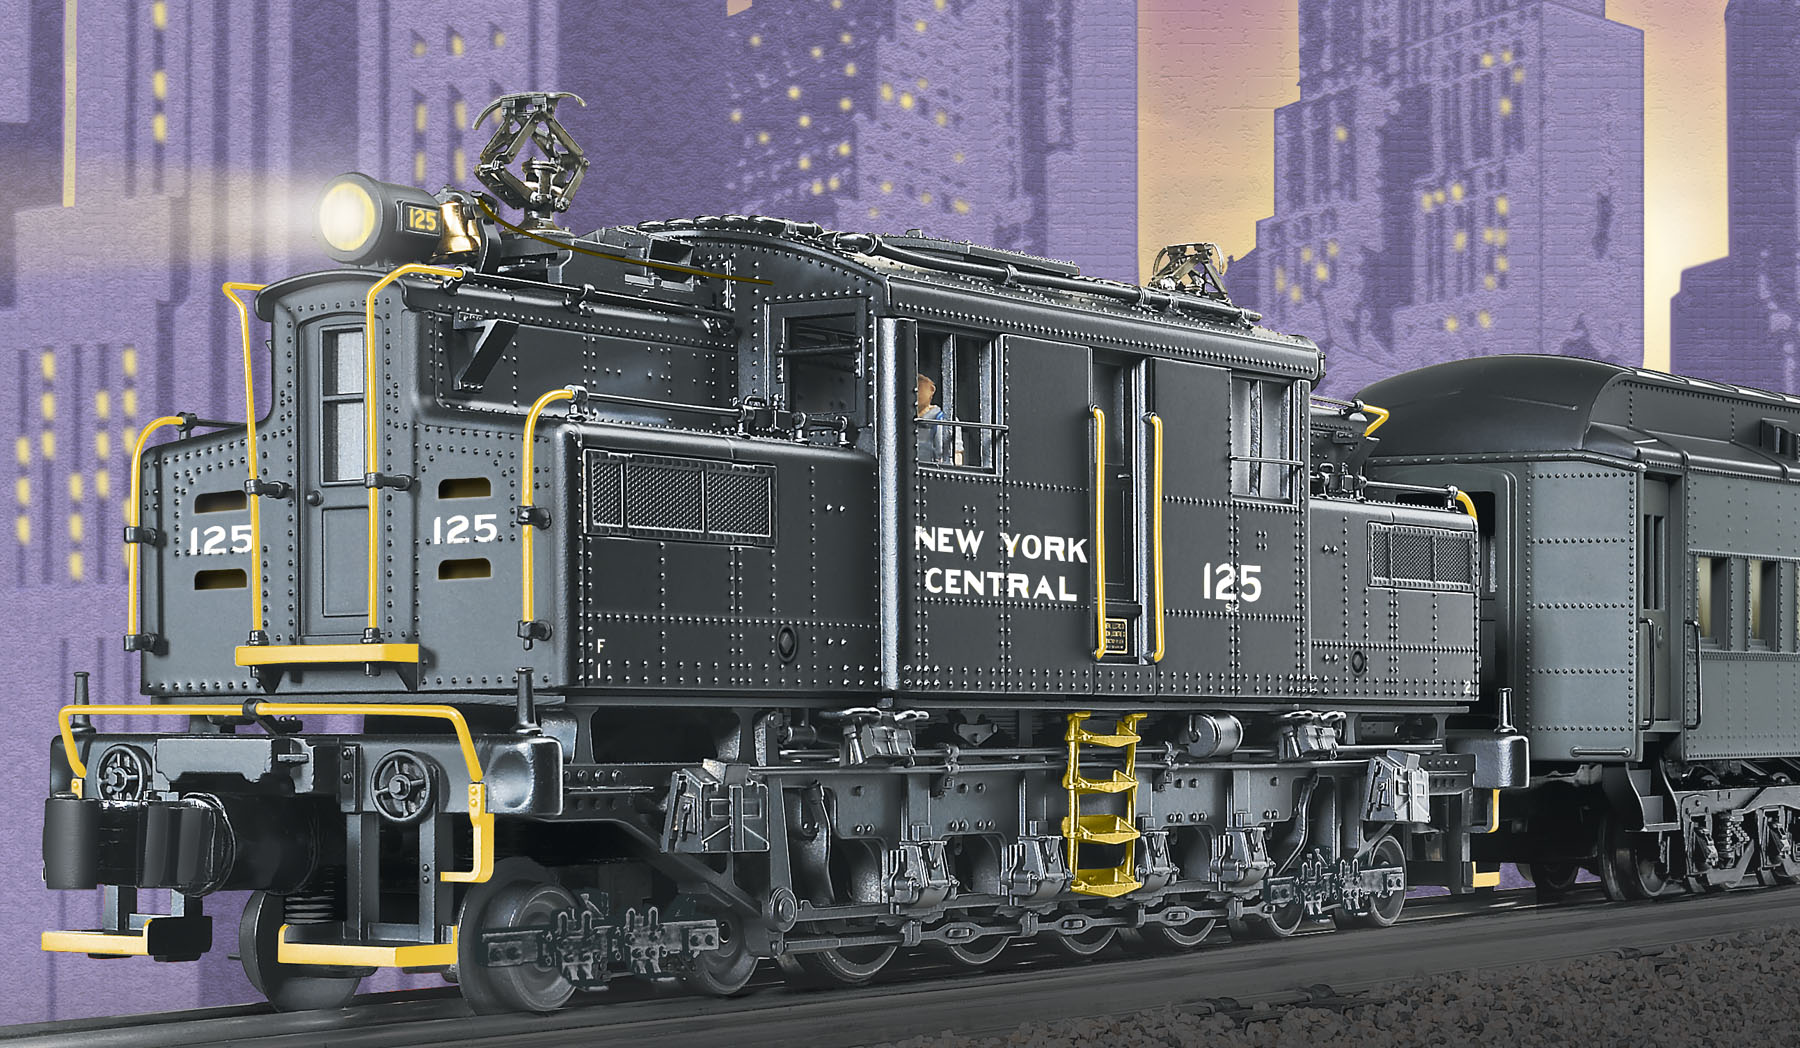 New York Central Tmcc S 2 Electric 125 Lionel Locomotive Wiring Diagram 7 05 Nyc 1 2005